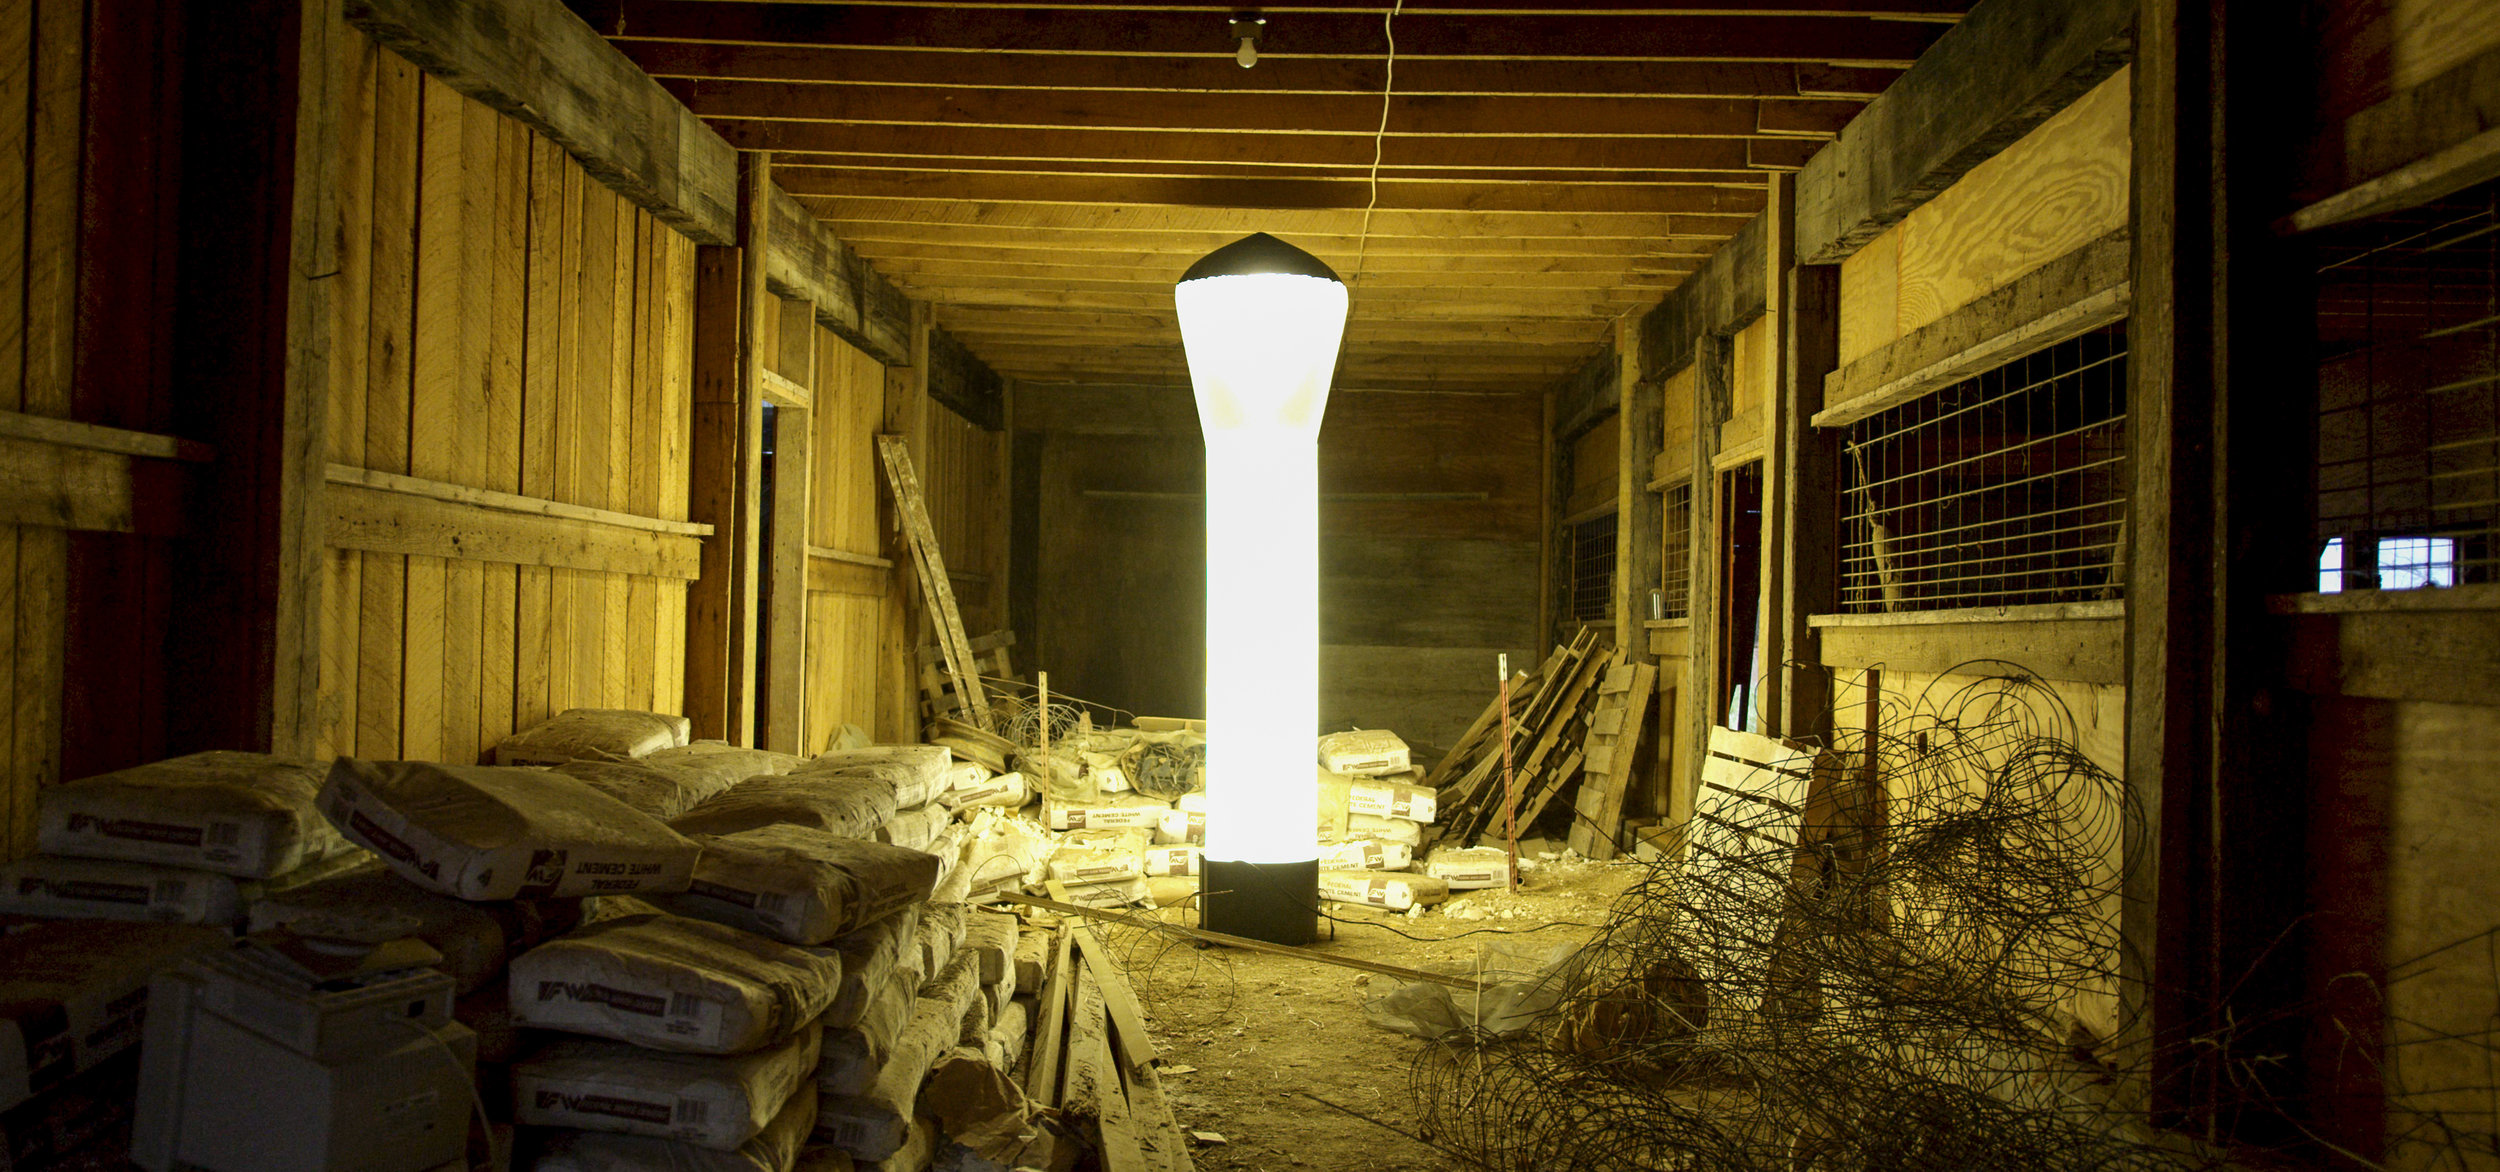 AirLight - The World's Most Portable LED Light Tower10 feet tall, 37,200 lumens